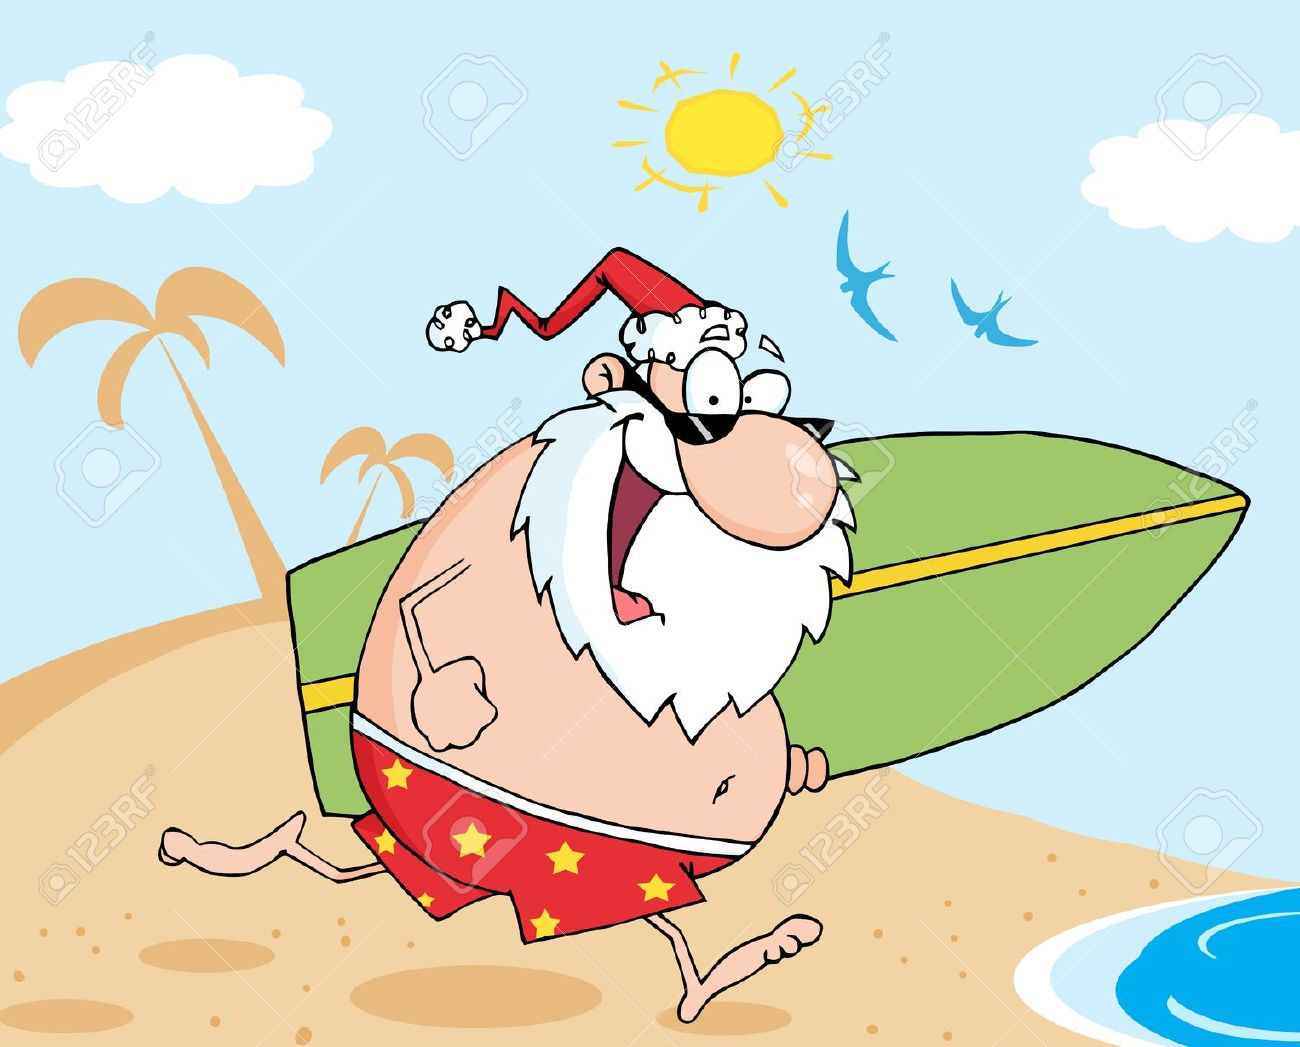 Santa on a surfboard clipart jpg free download Santa Running On A Beach With A Surfboard Royalty Free Cliparts ... jpg free download